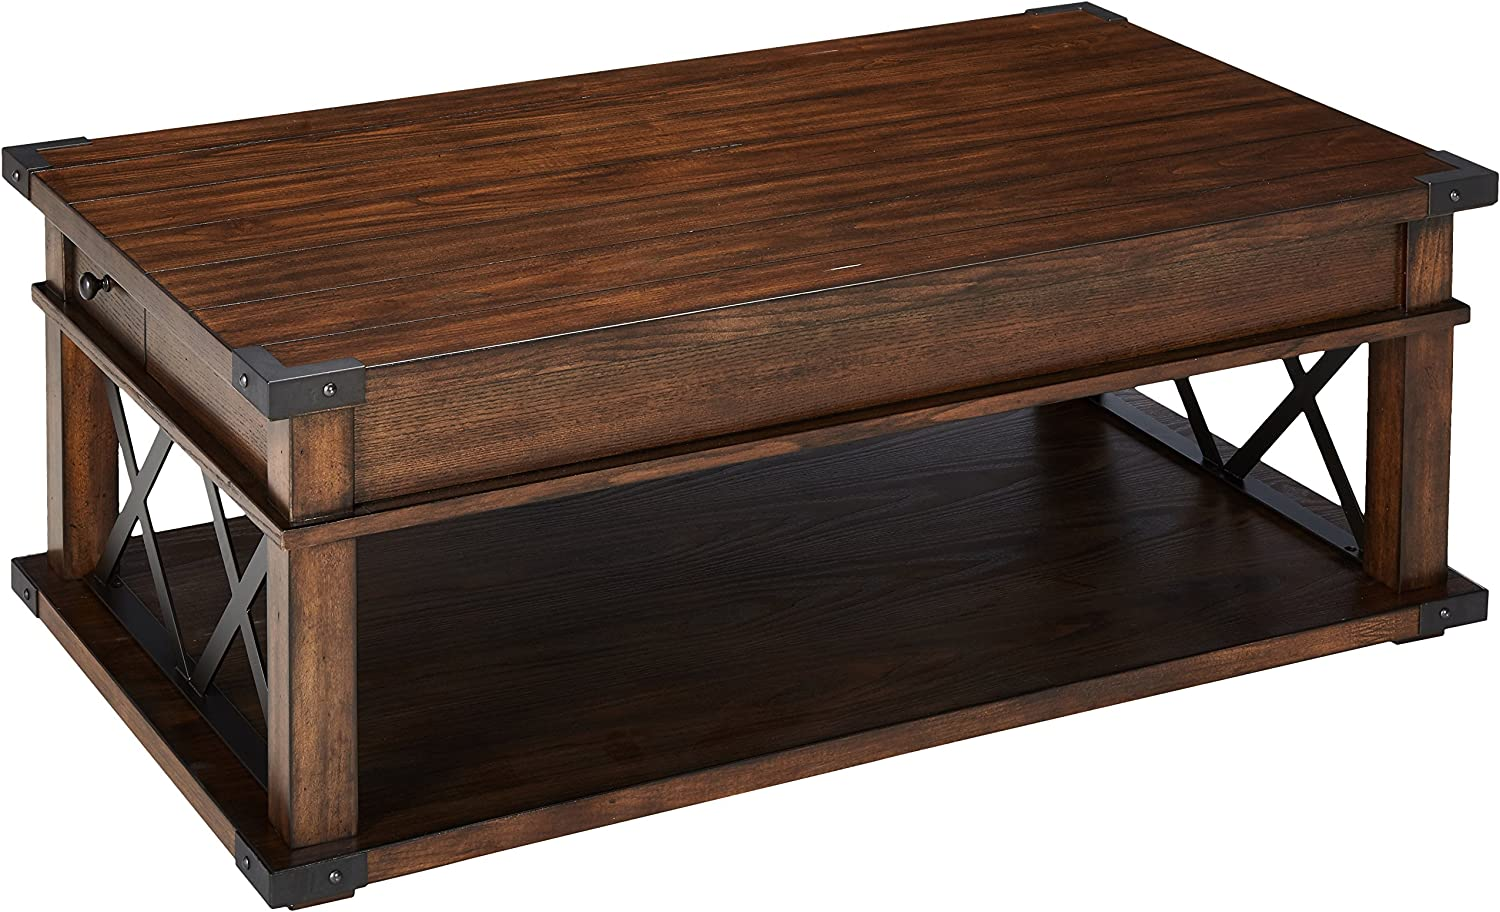 Progressive Furniture Landmark Castered Cocktail Table, Vintage Ash